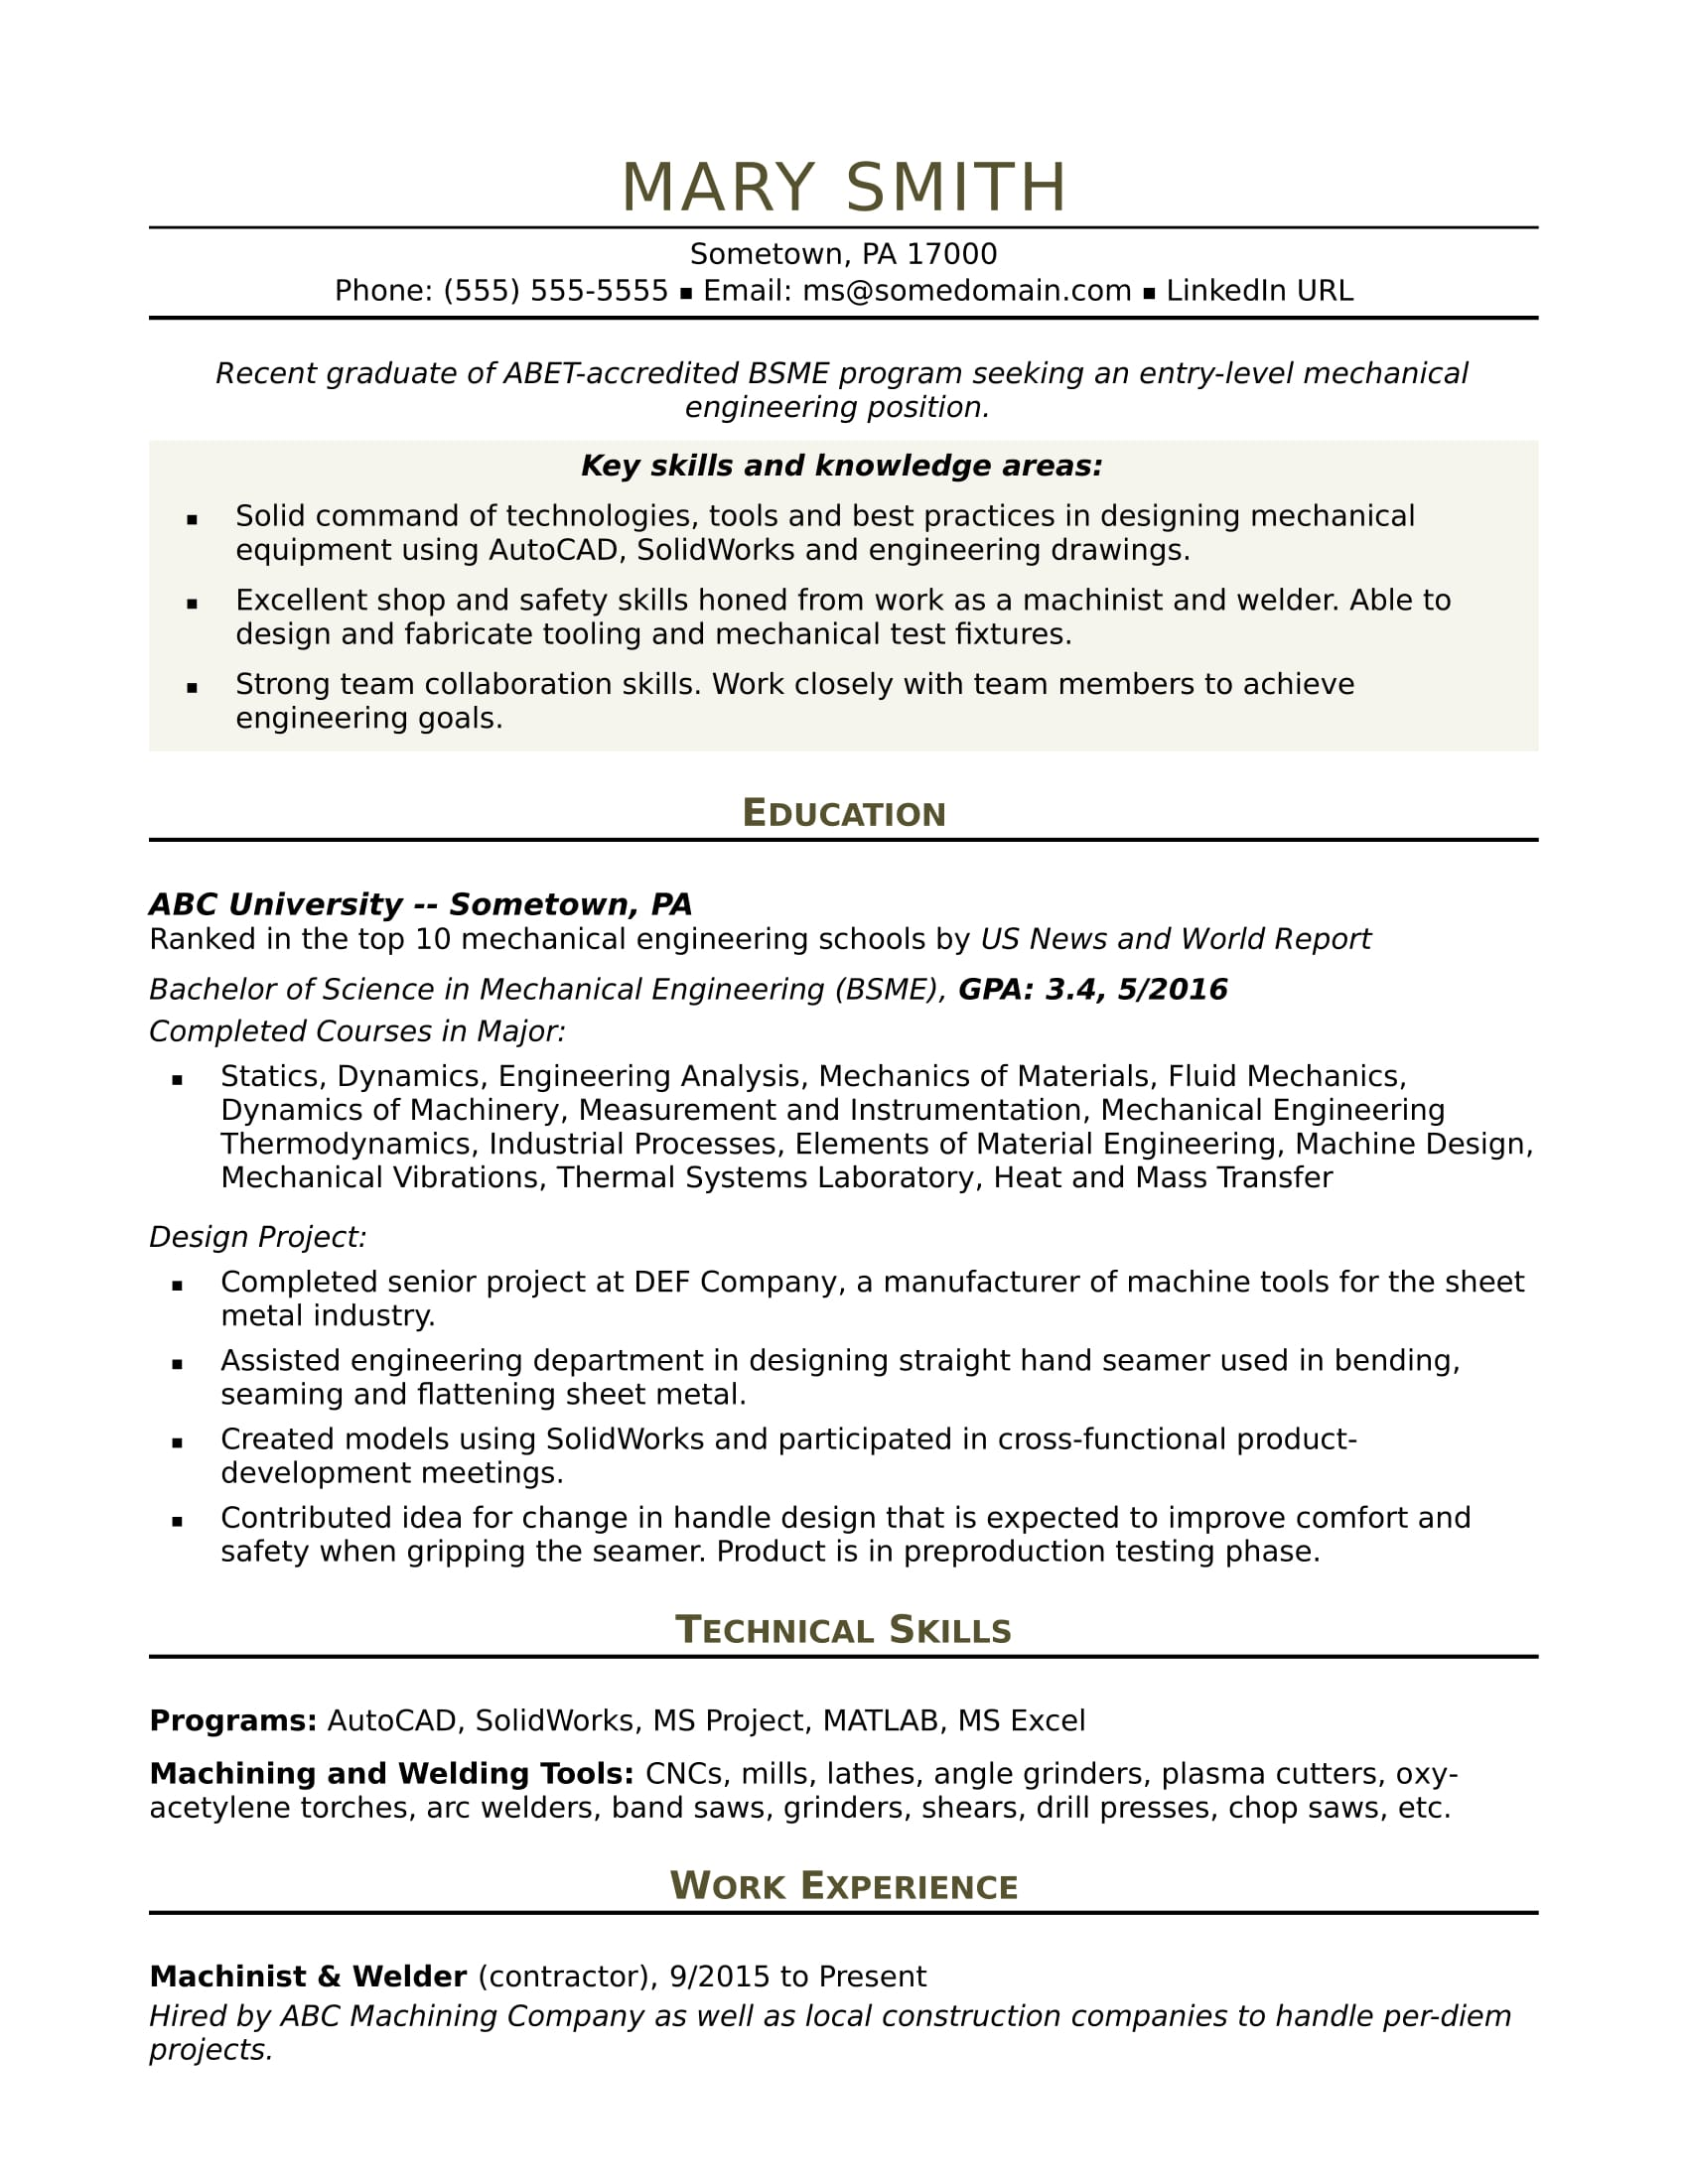 Sample Resume For An Entry Level Mechanical Engineer  Areas Of Expertise Resume